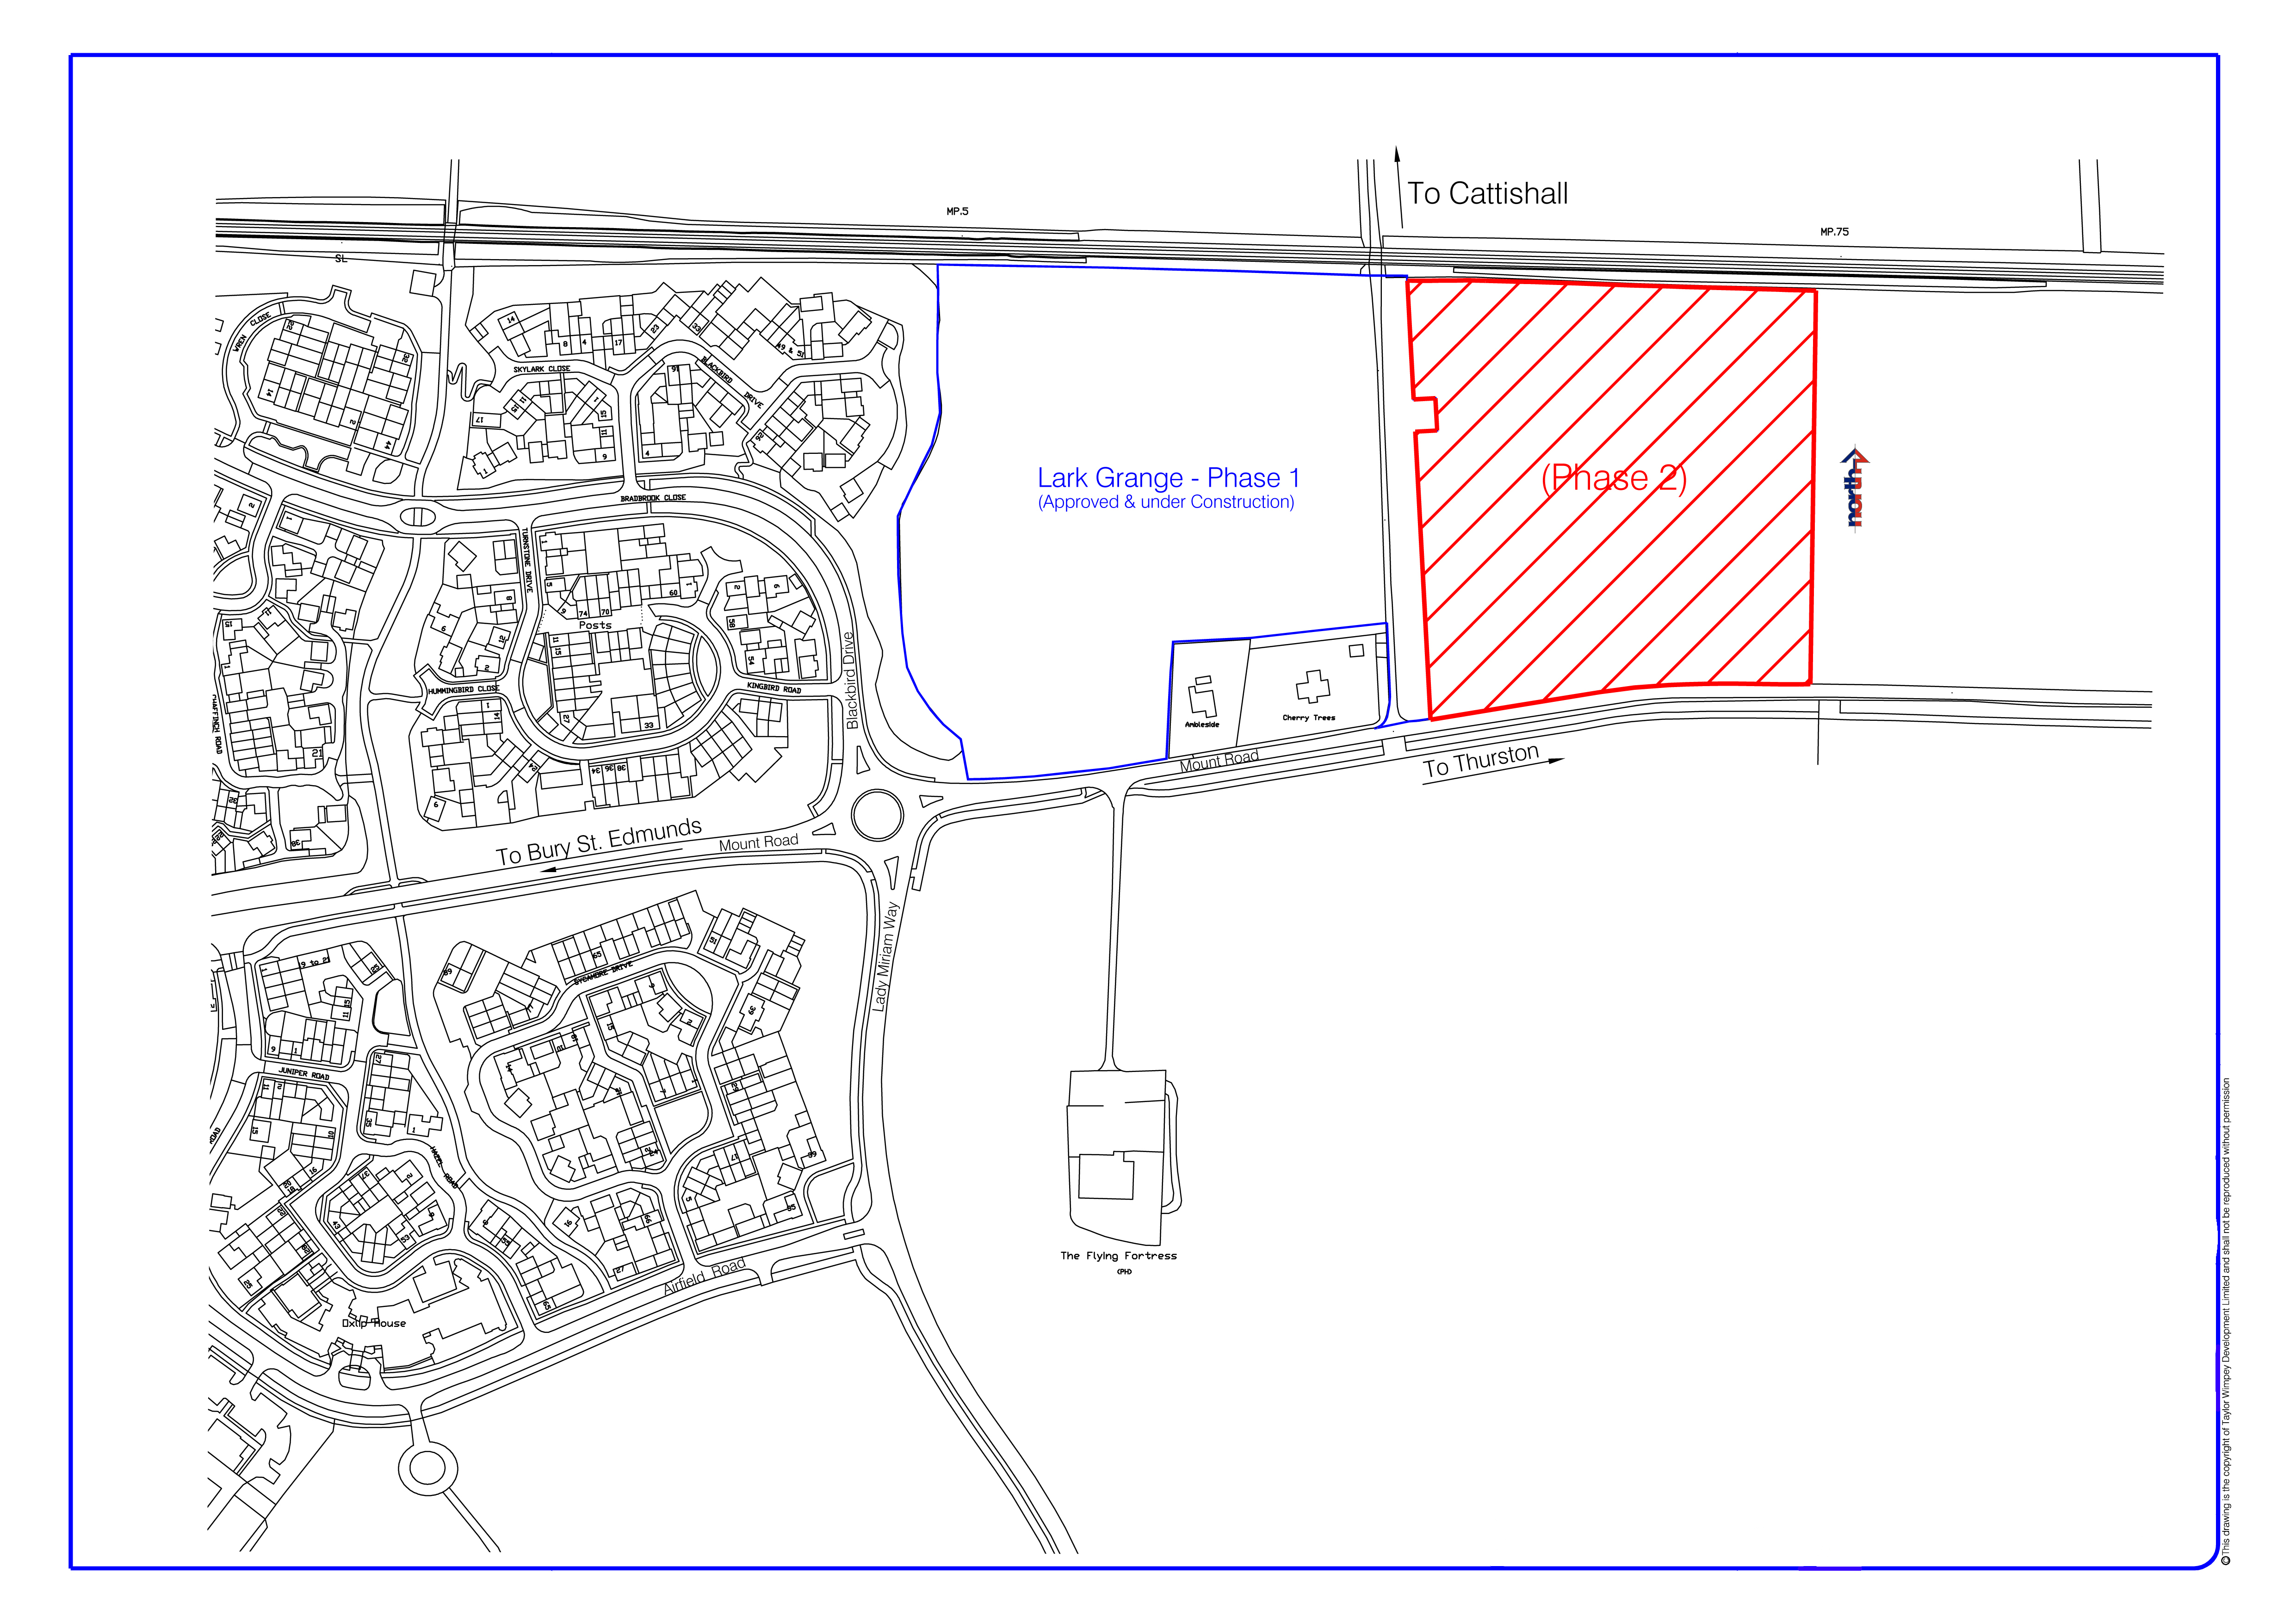 20826  PH2  Site Location Plan edited